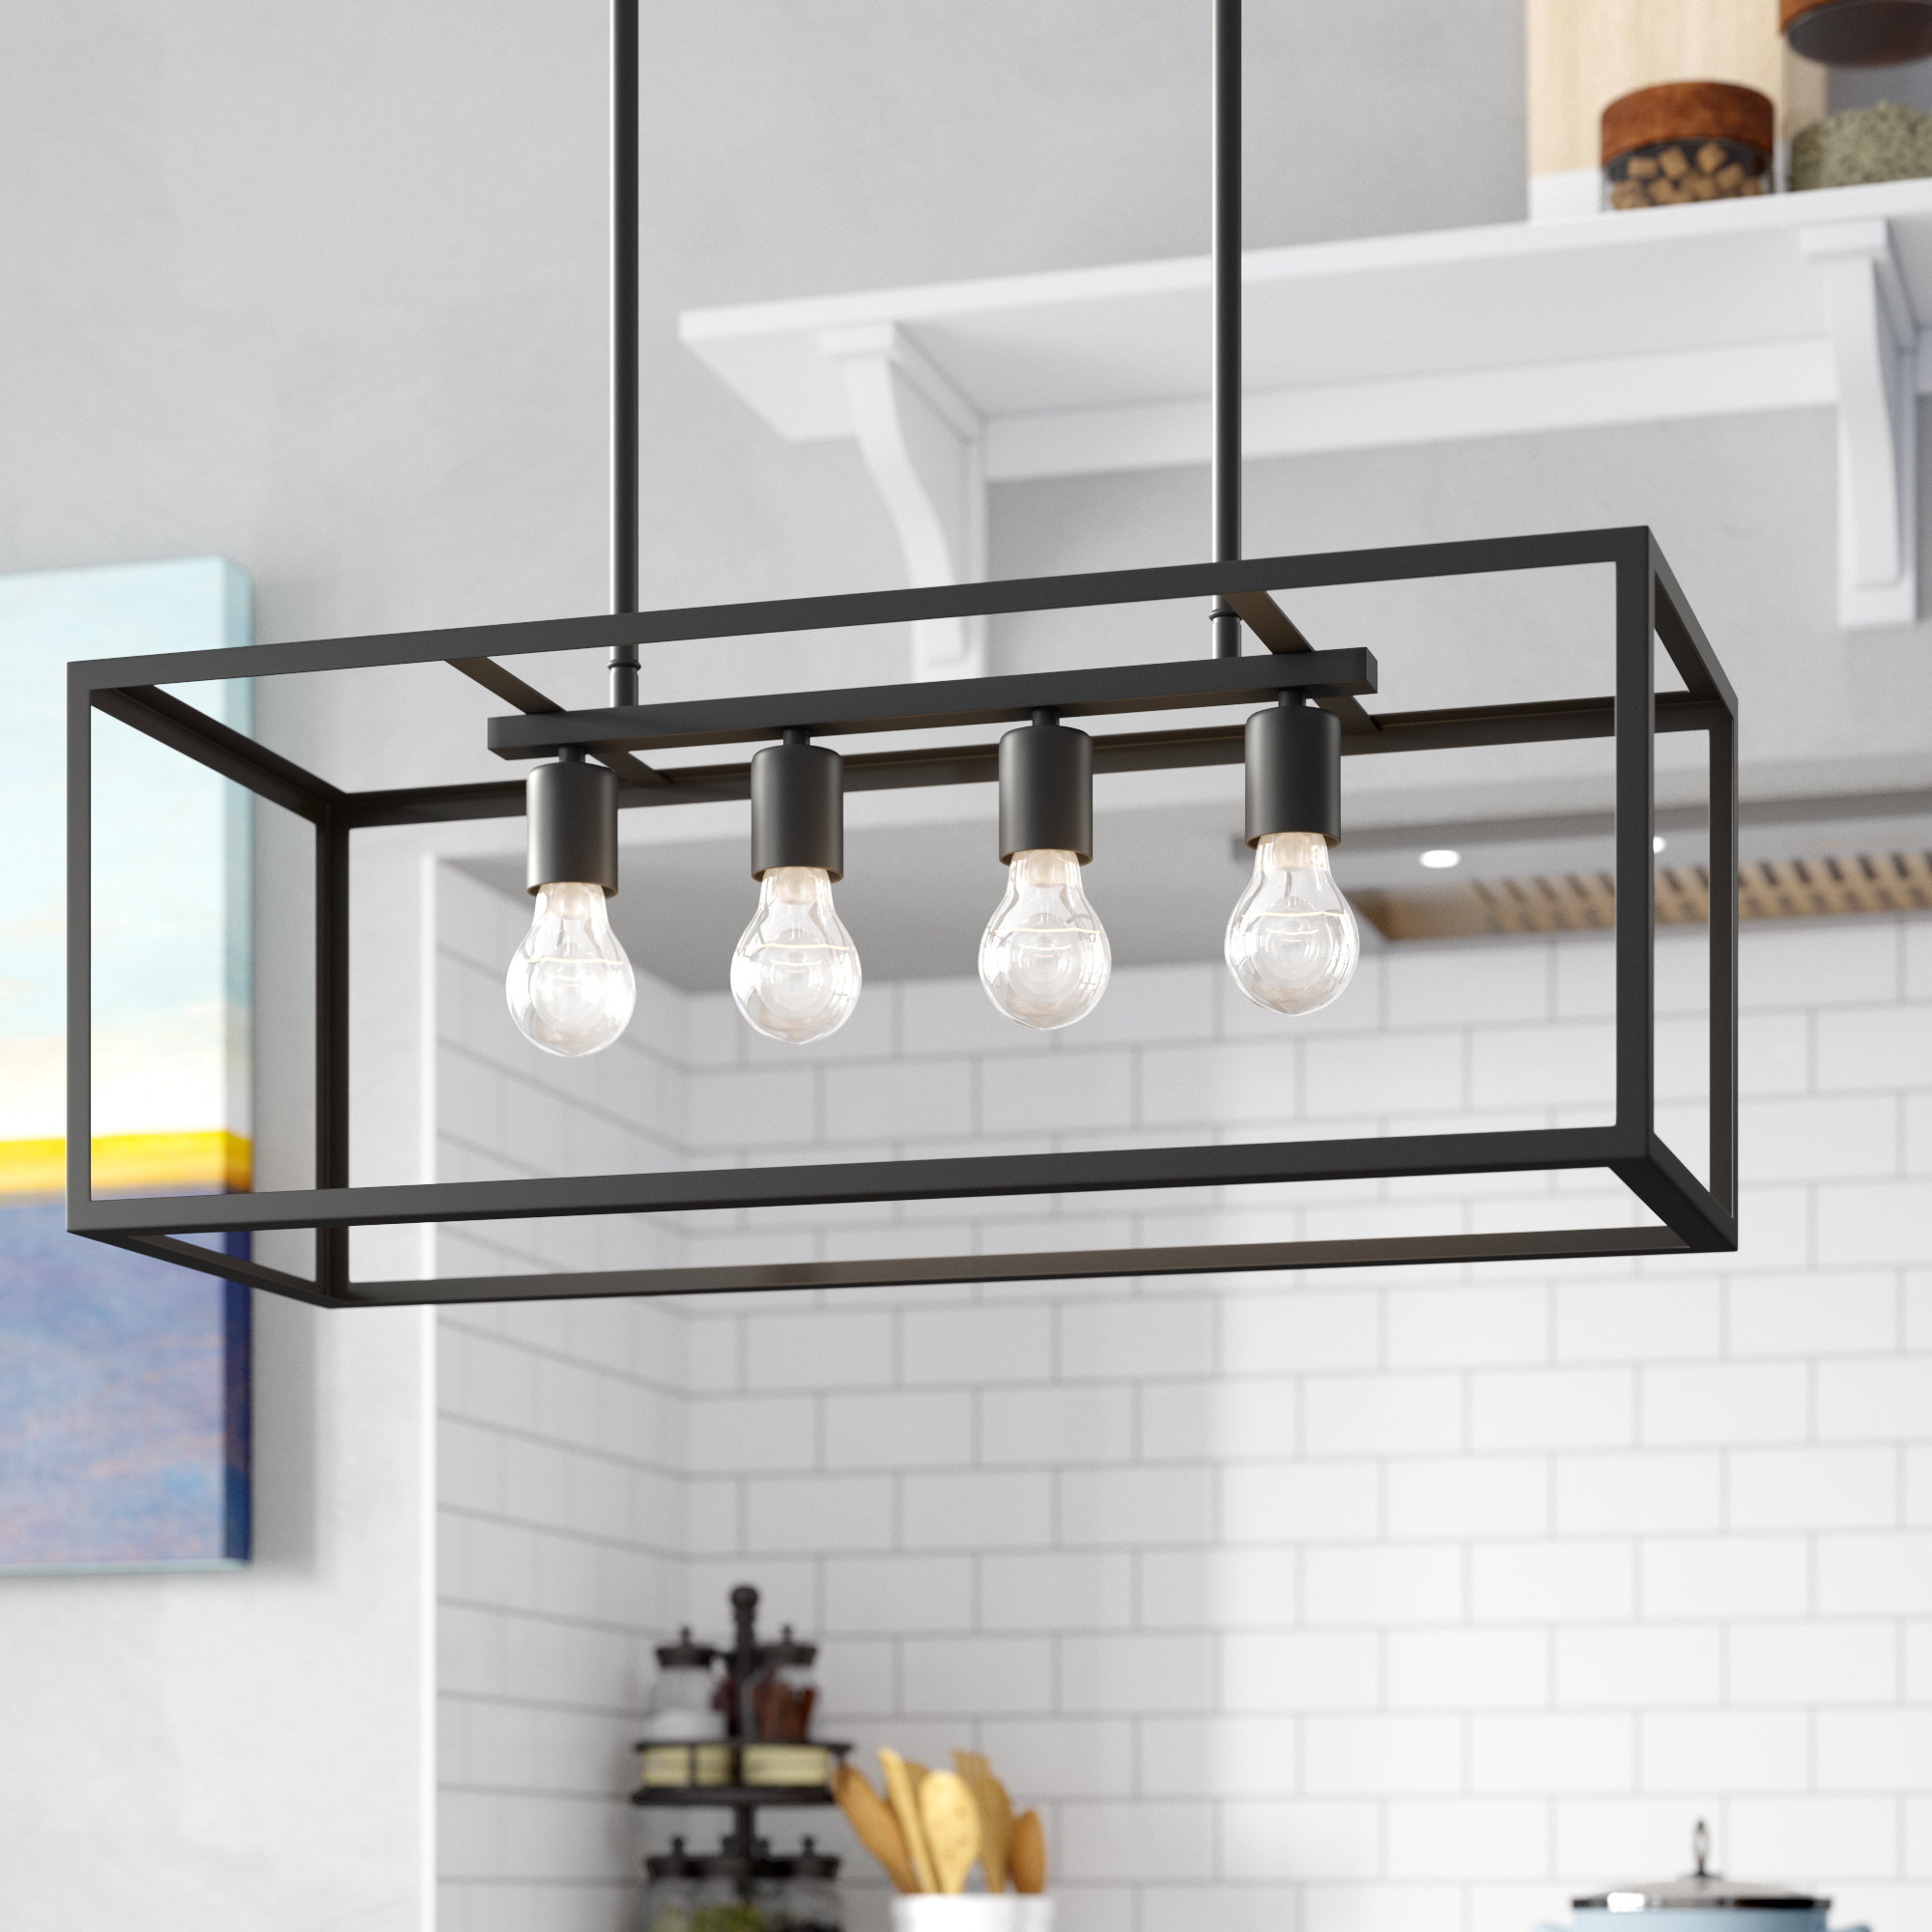 Sousa 4 Light Kitchen Island Linear Pendants Pertaining To Trendy Ratner 4 Light Kitchen Island Linear Pendant (View 12 of 20)